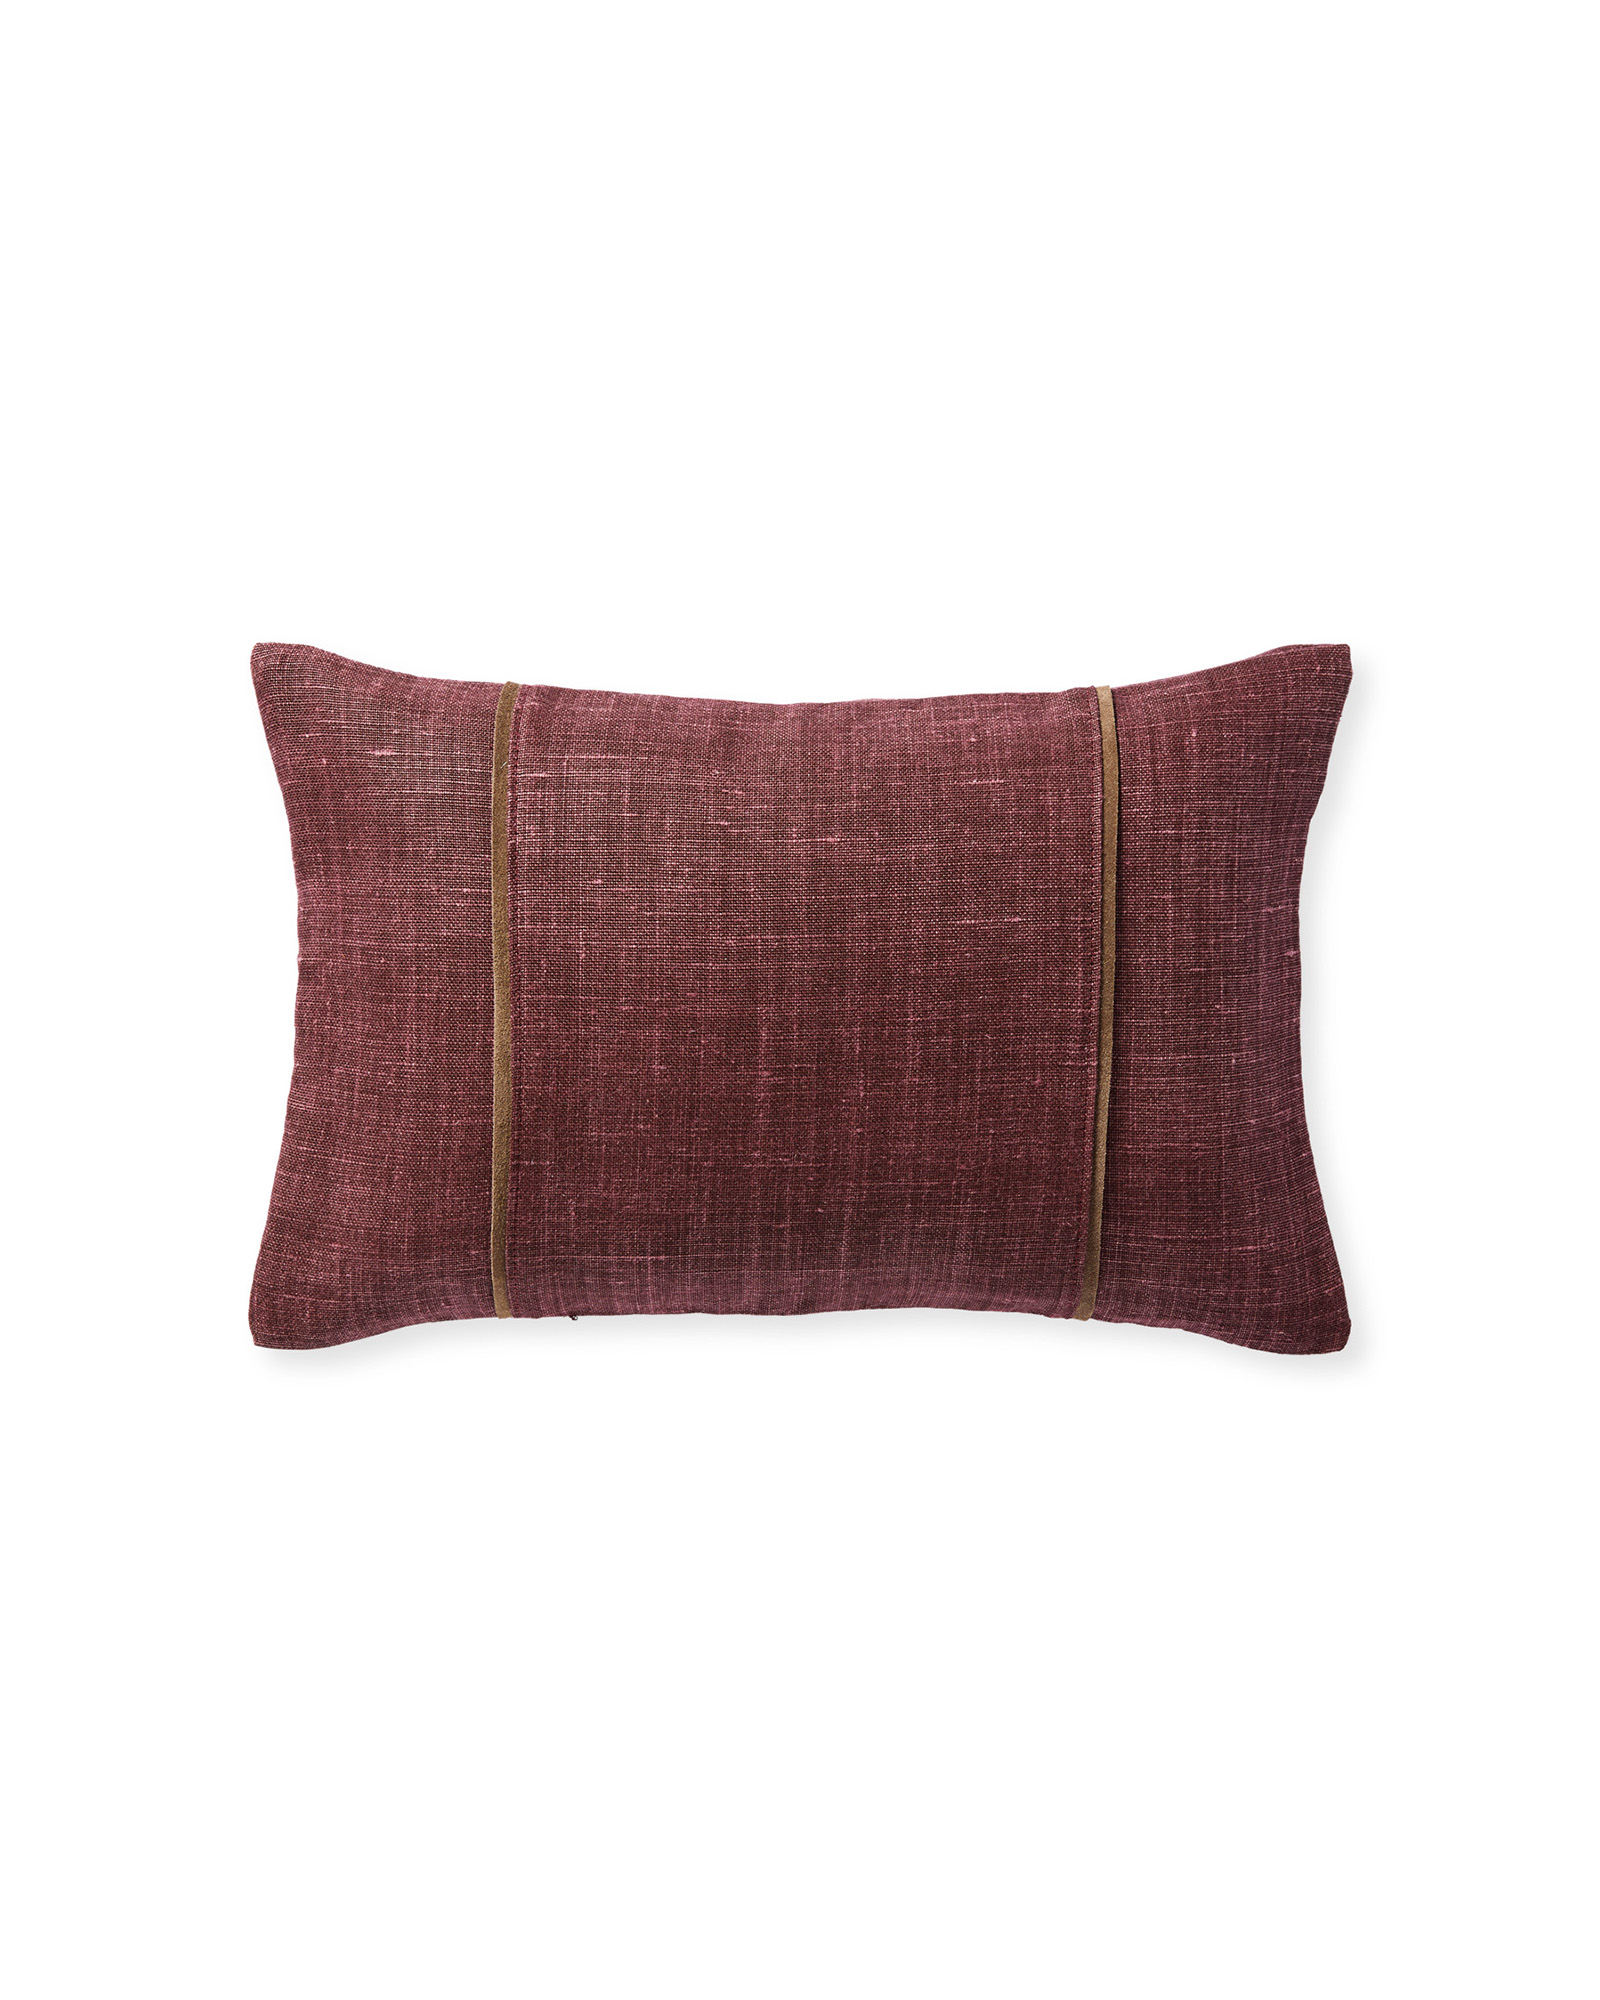 Kentfield Pillow Cover, Merlot